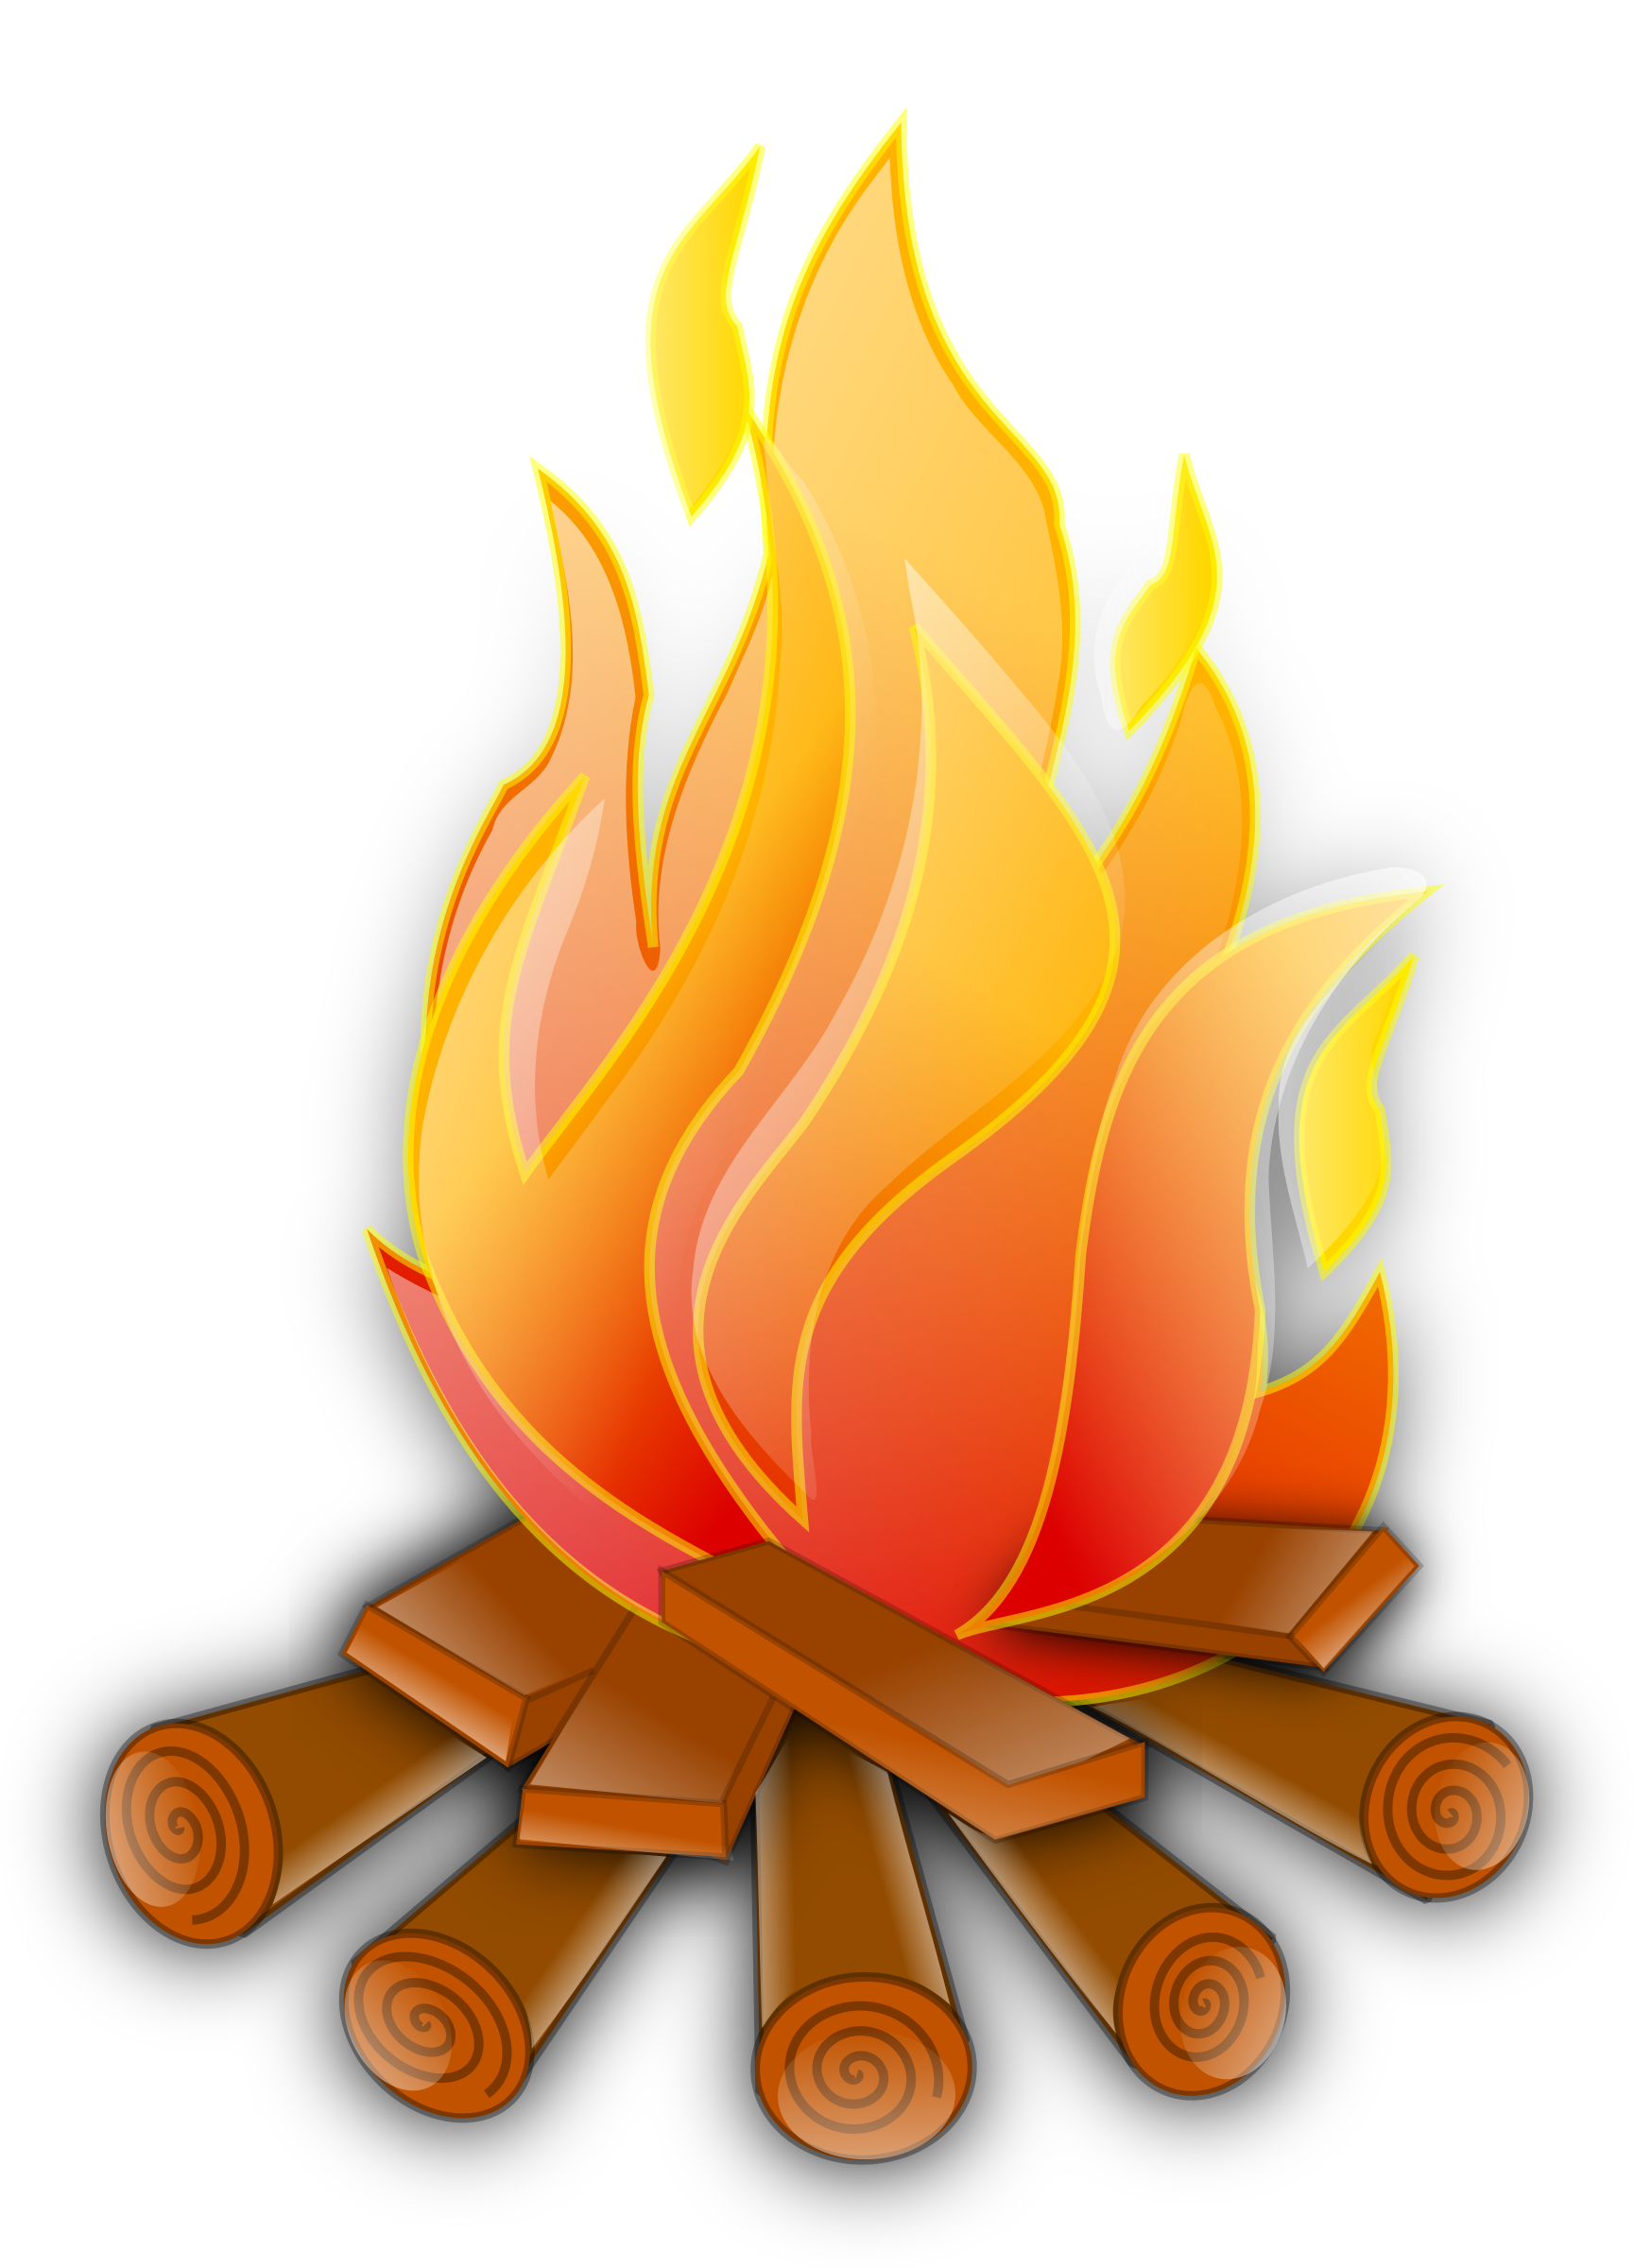 Clipart Fire June Holidays Free Fire Cli-Clipart fire june holidays free fire clip art images flame-1